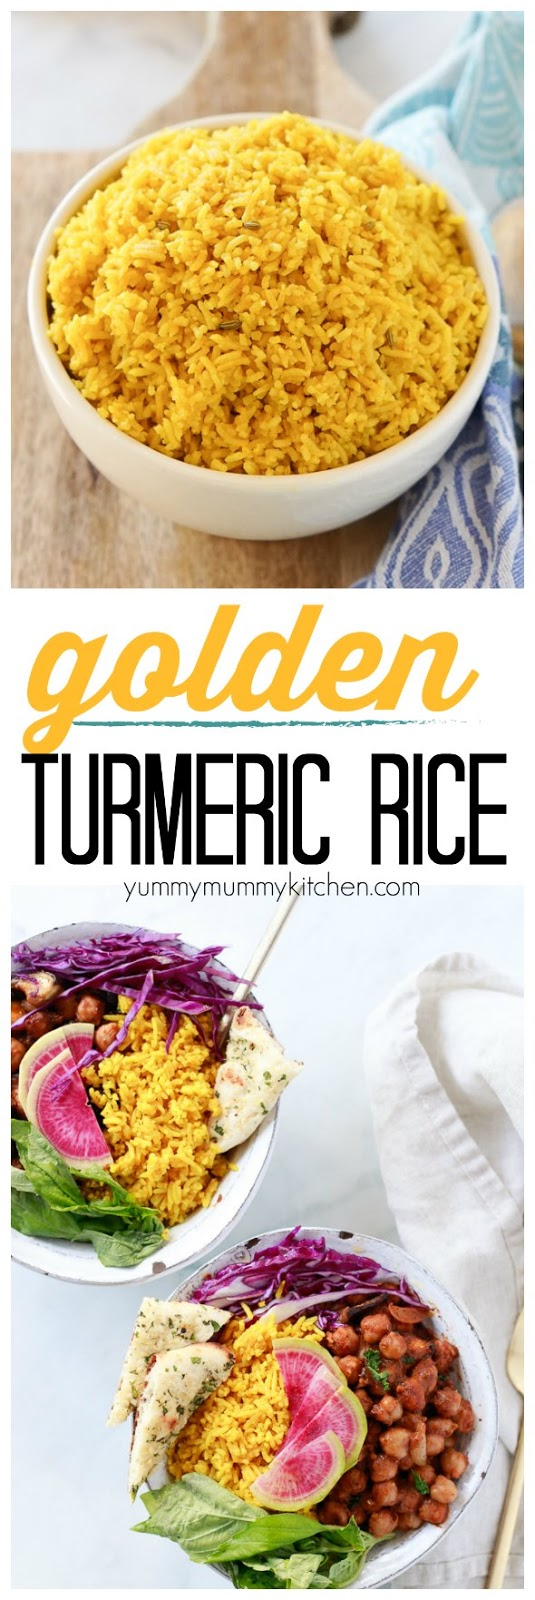 Spiced Indian turmeric rice is so easy in the Instant Pot pressure cooker or rice cooker. Golden turmeric rice is perfect with Buddha bowls and many other dishes. This recipe is naturally vegan and gluten free.